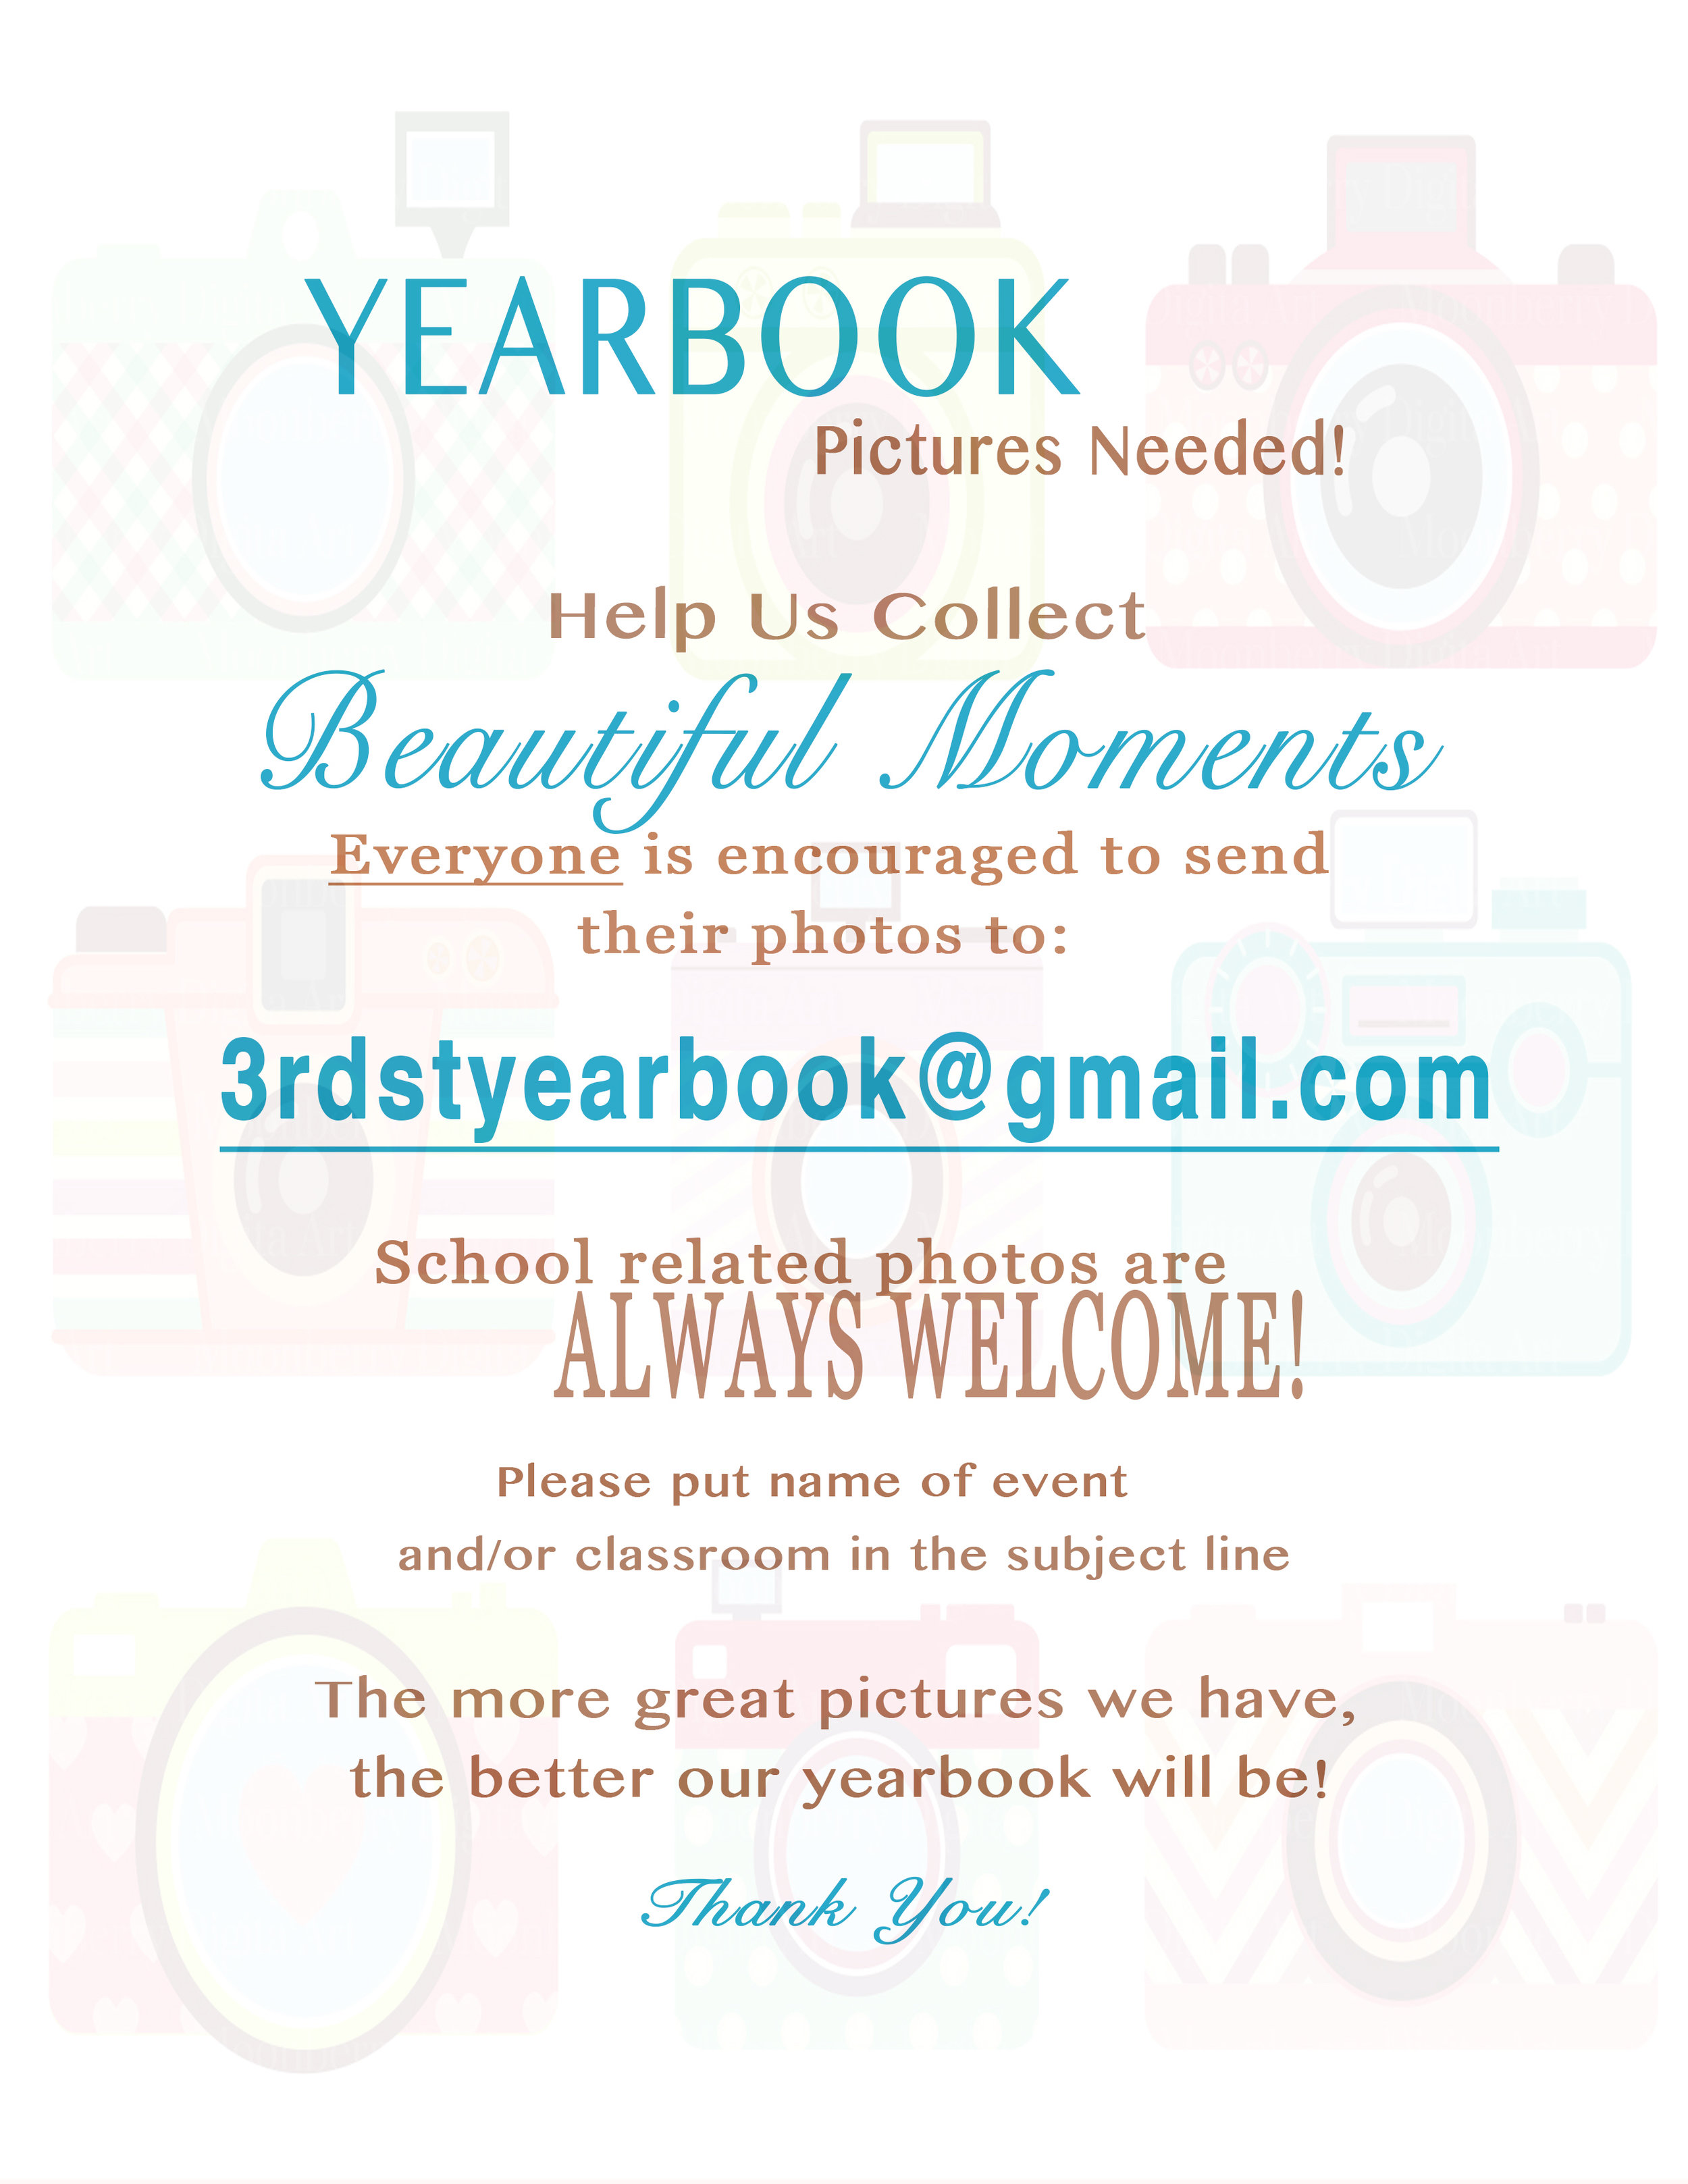 yearbookflyer2 copy.jpg